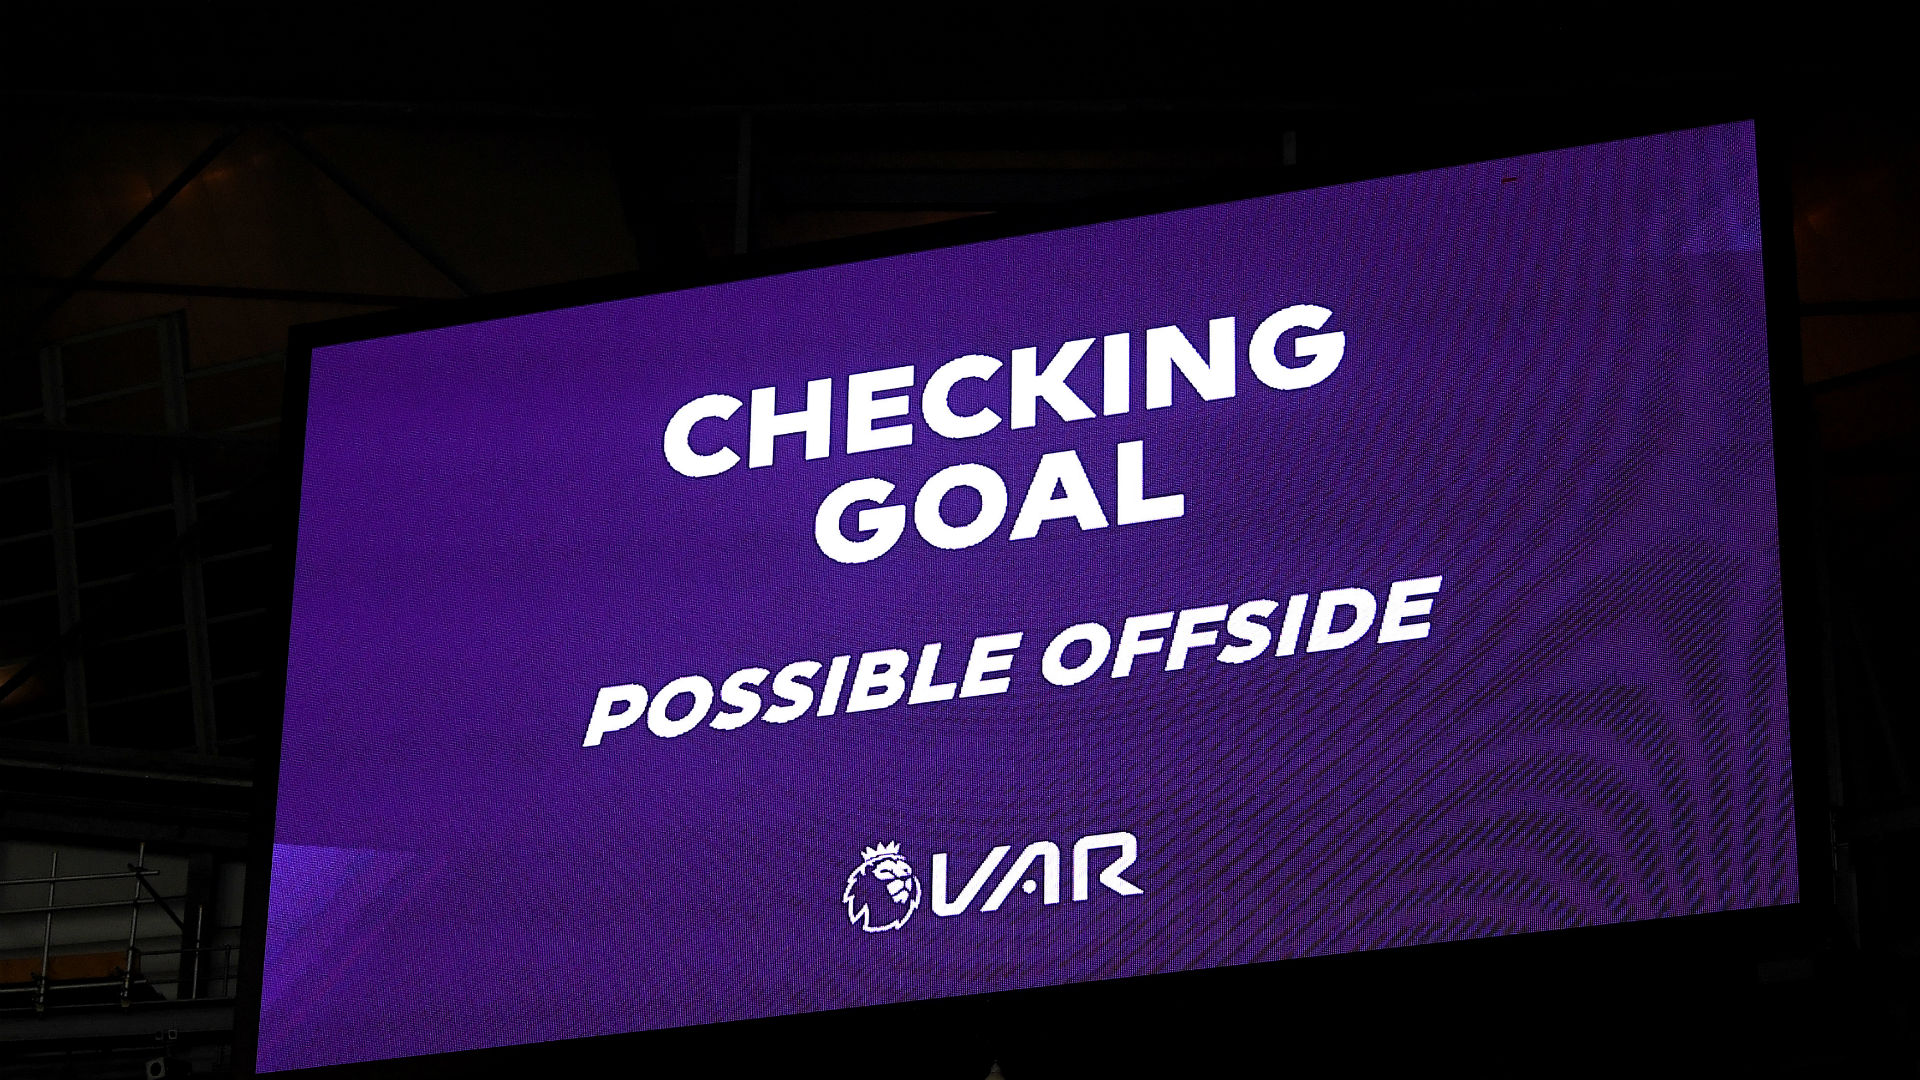 Guardiola: Every weekend VAR is a big mess